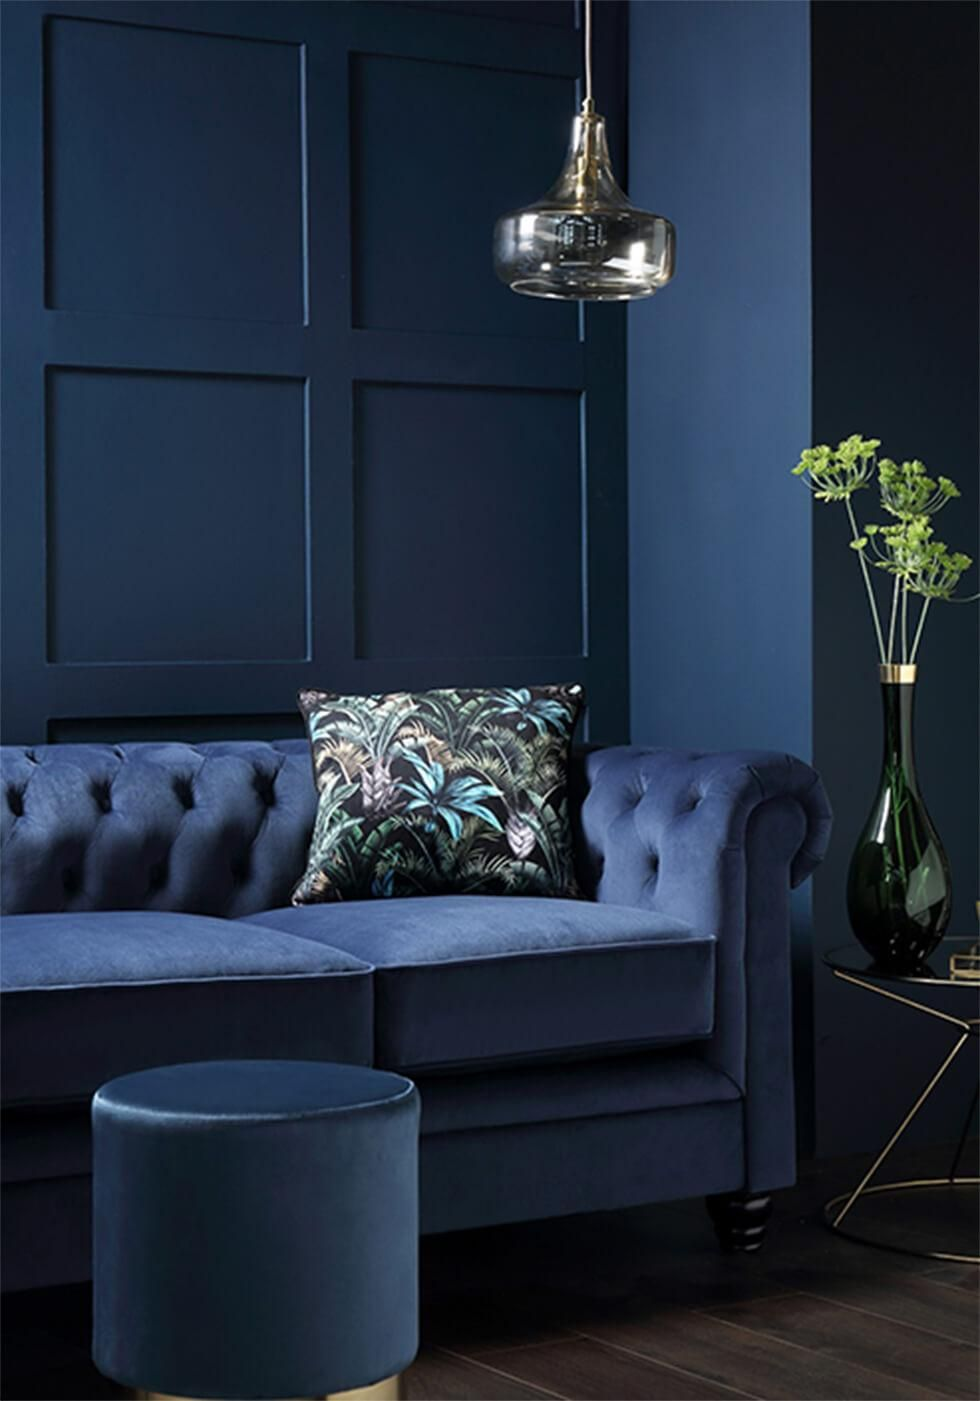 8 Ways To Style The Chesterfield Sofa Furniture Choice In 2020 Blue Green Bedrooms Blue Velvet Chairs Blue Living Room